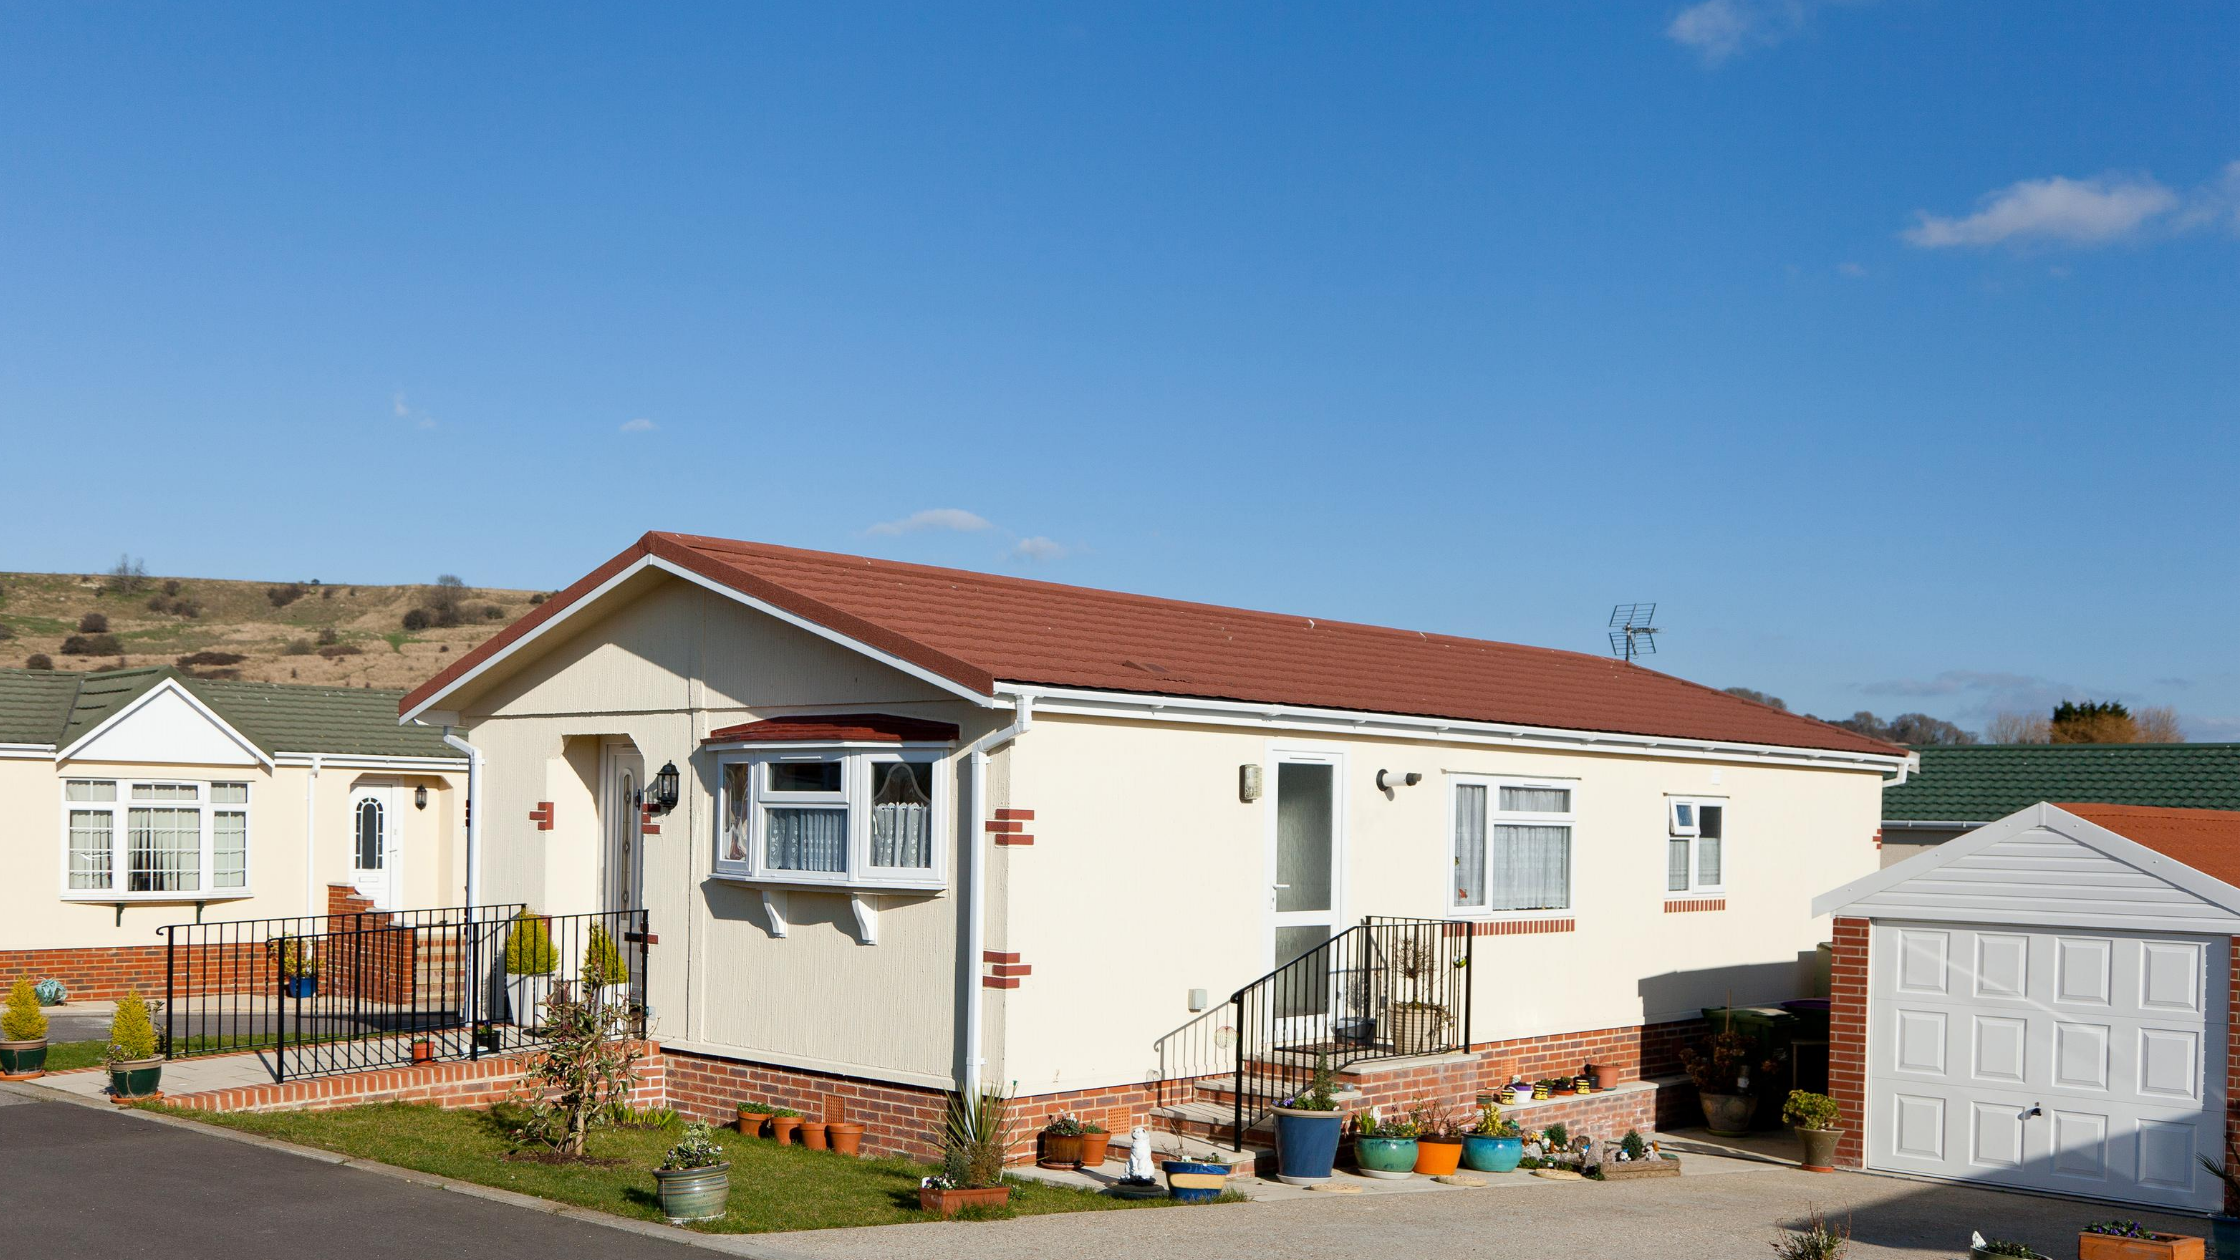 Is Buying a Manufactured Home a Good Investment Opportunity in 2020?